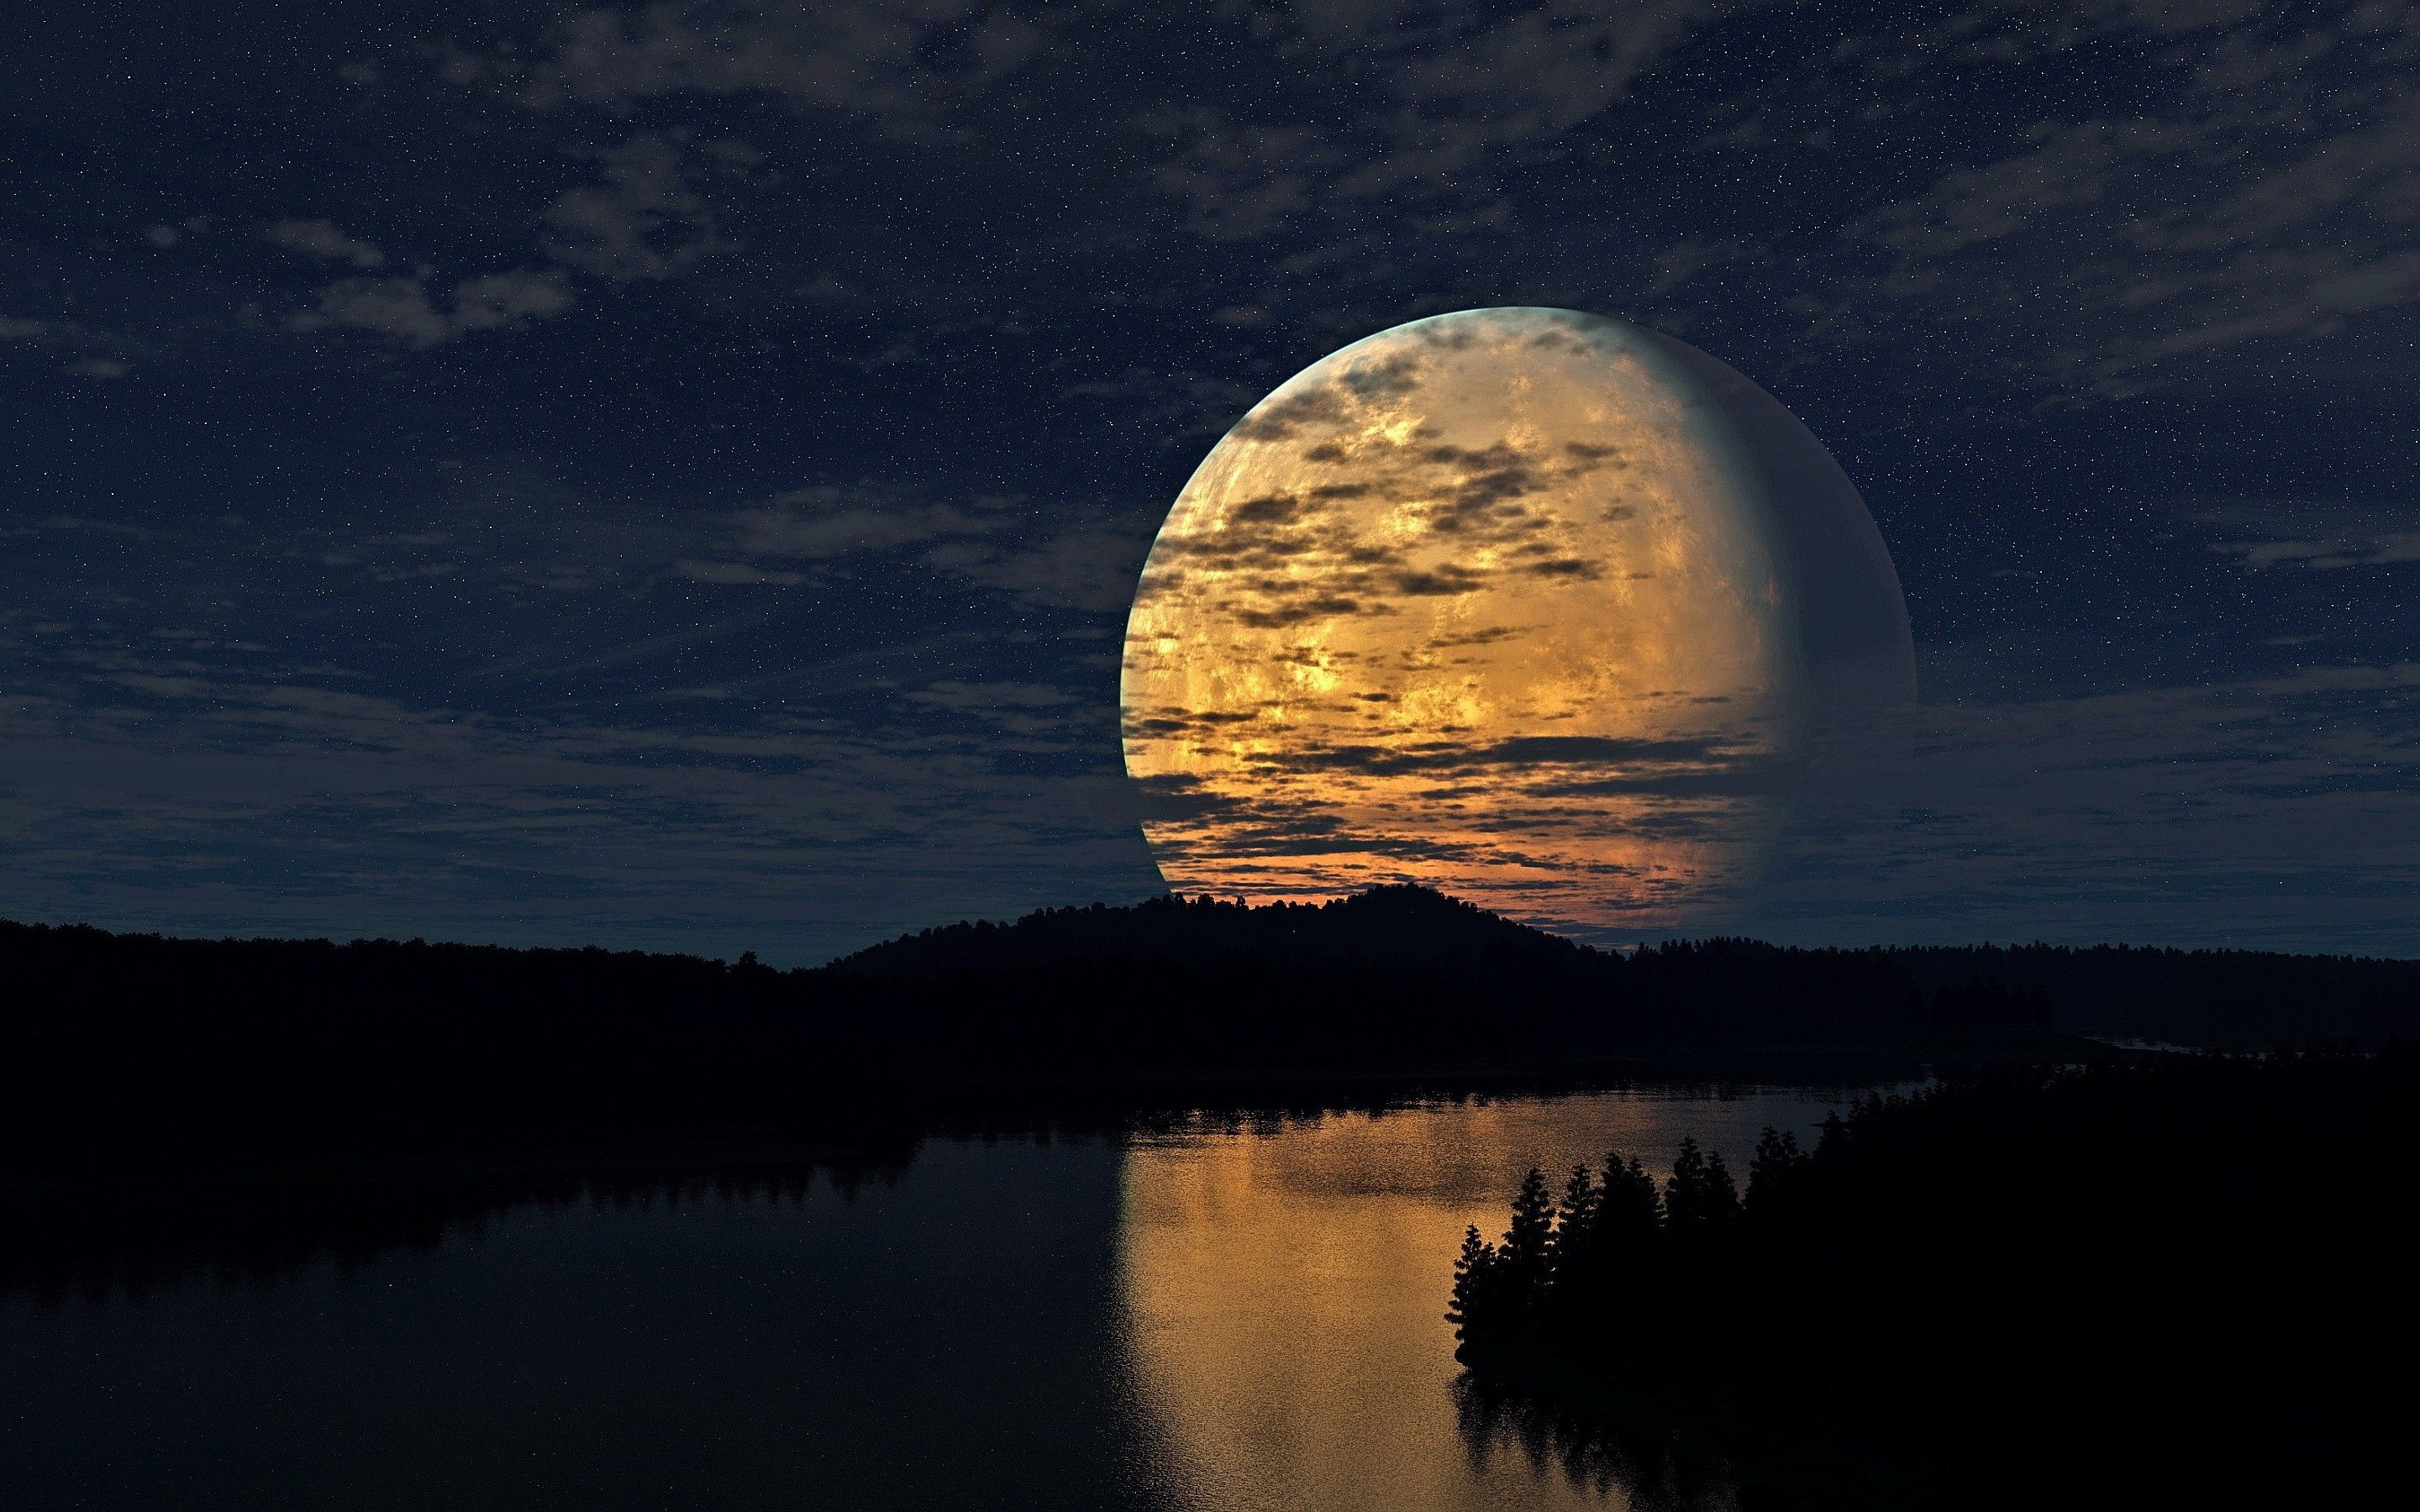 Big Yellow Moon Reflected In River Water Beautiful Nature Landscapes Desktop Wallpapers Awsome Landscape Wallpapers H Night Sky Moon Sky Moon Beautiful Moon Hd wallpaper sea moon water reflection